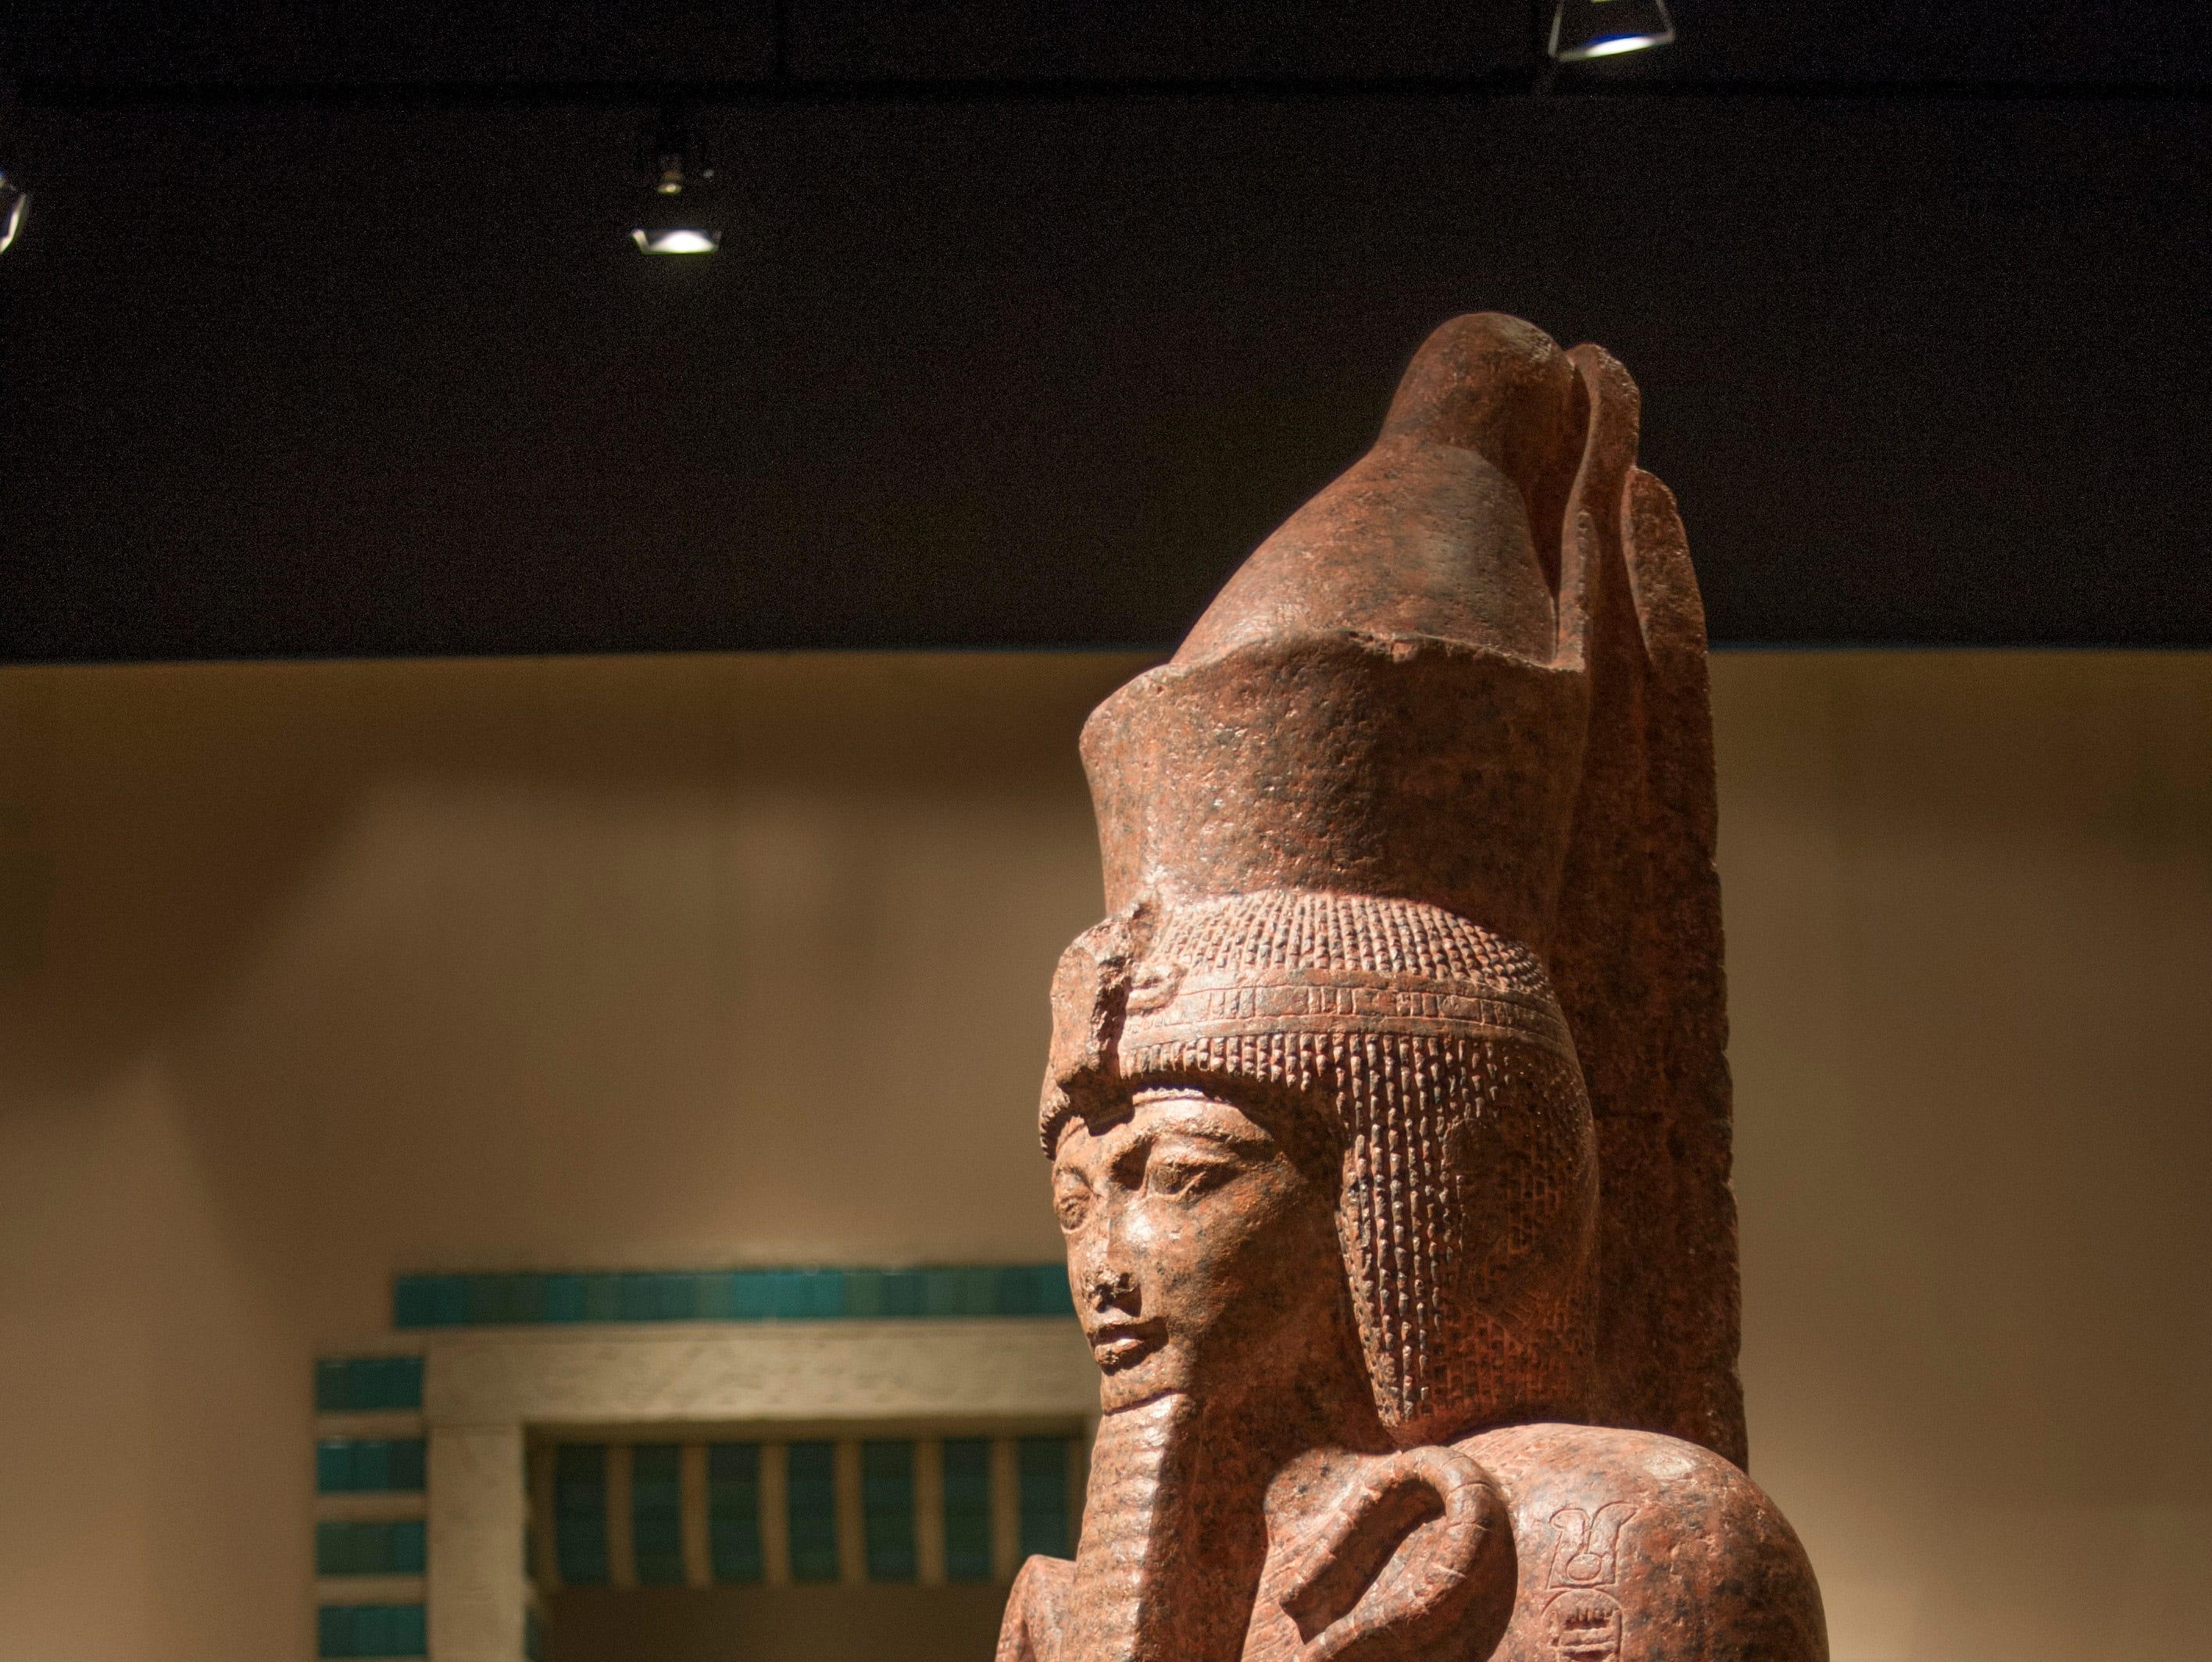 A plaster cast of Ramesses II greets visitors to the 'Ancient Egypt: The Eternal Voice' on Wednesday, May 8, 2013, at the McClung Museum of Natural History and Culture. The museum is celebrating its 50th anniversary year with a community birthday party June 1 from 1-5 p.m.